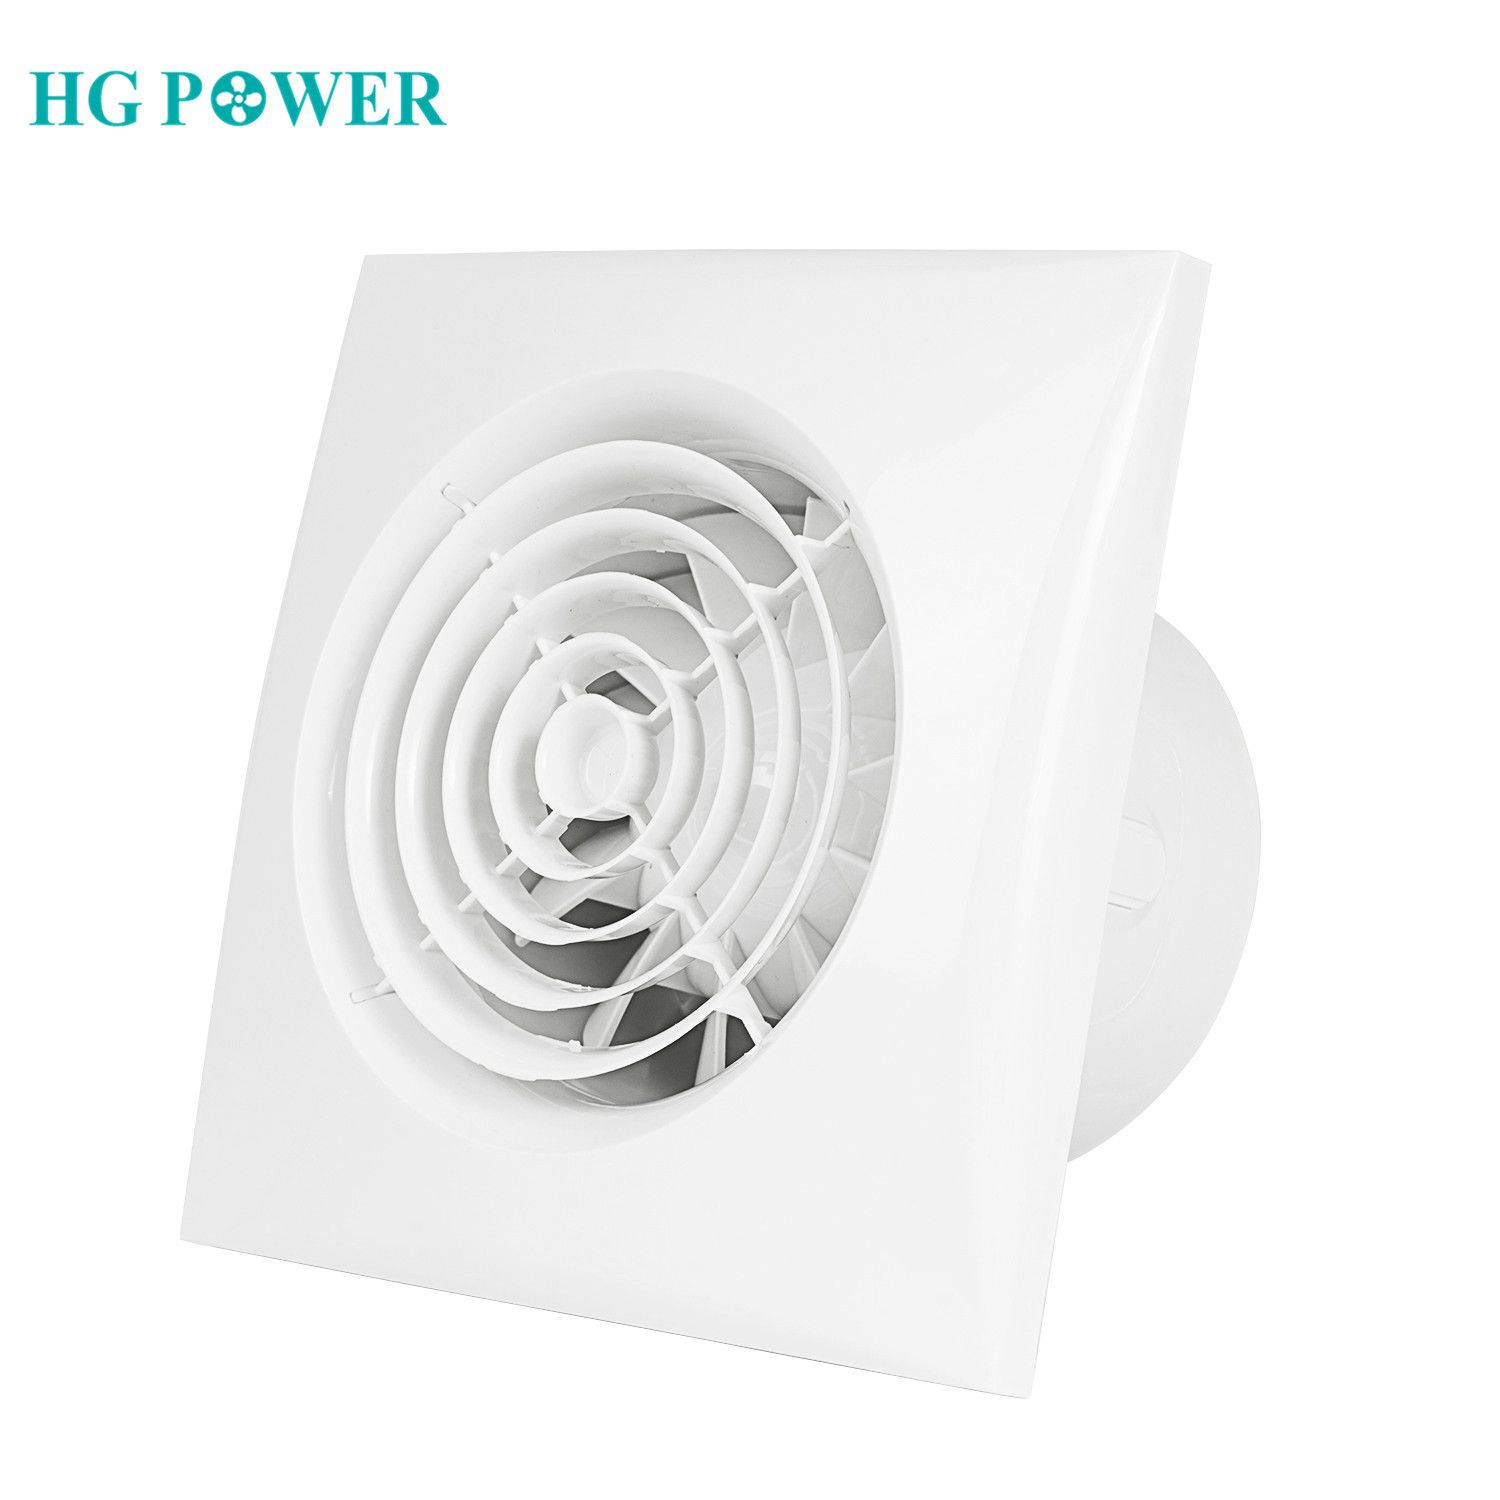 110v 220v 10w 4 Inch Silent Extractor Exhaust Fan Air Ventilation Fans Ventilator Wall Window Fan For Ventilation Fan Ventilation Fans Air Ventilation Fan